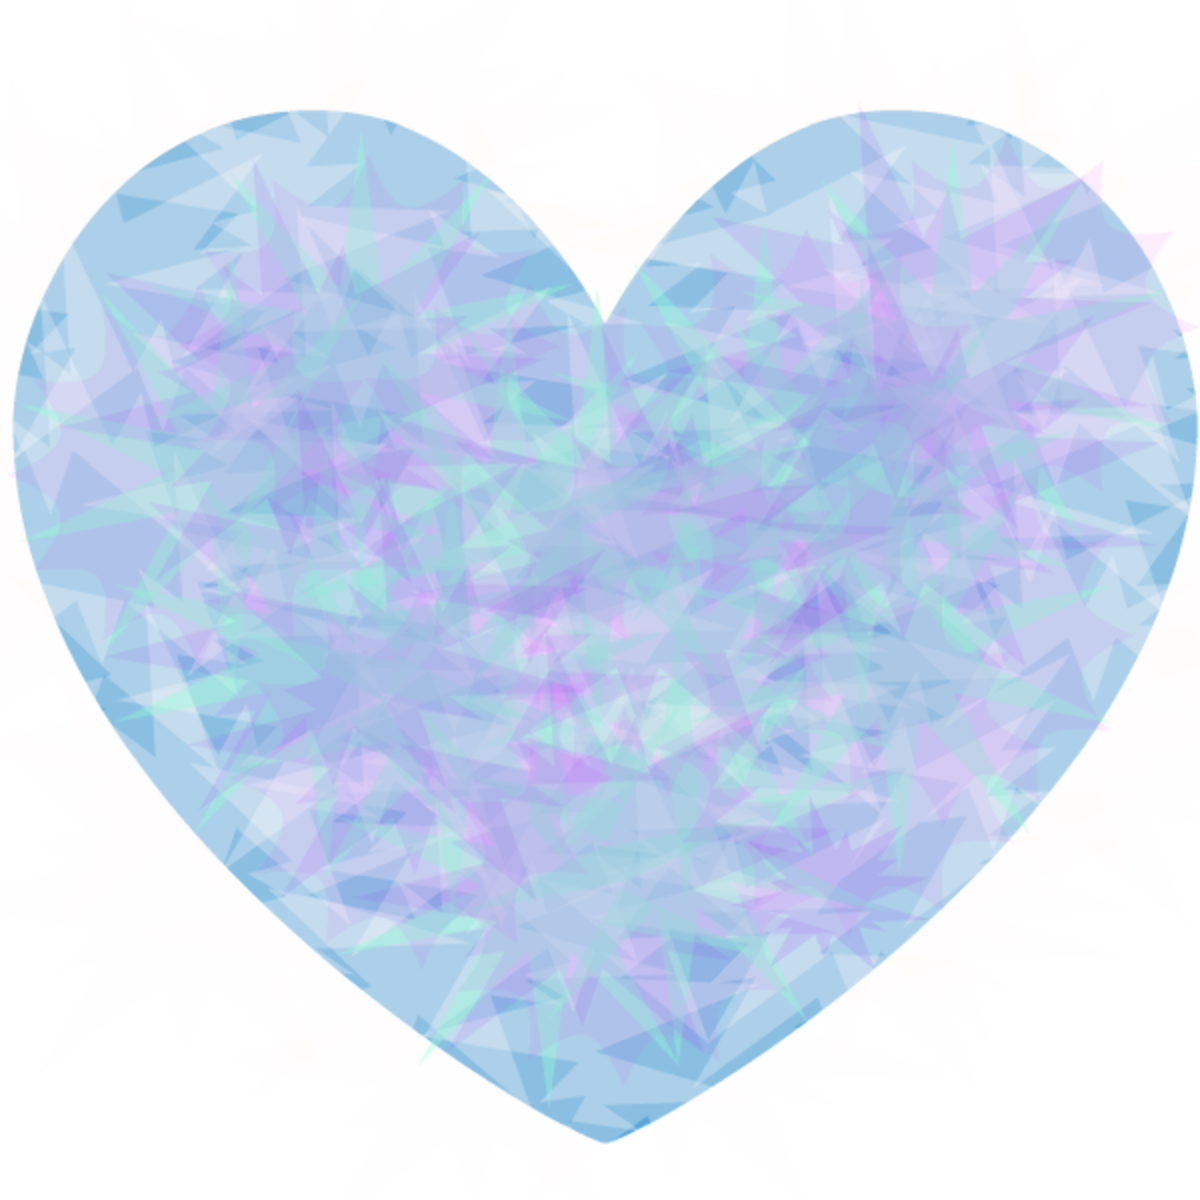 Blue and purple patterned heart image